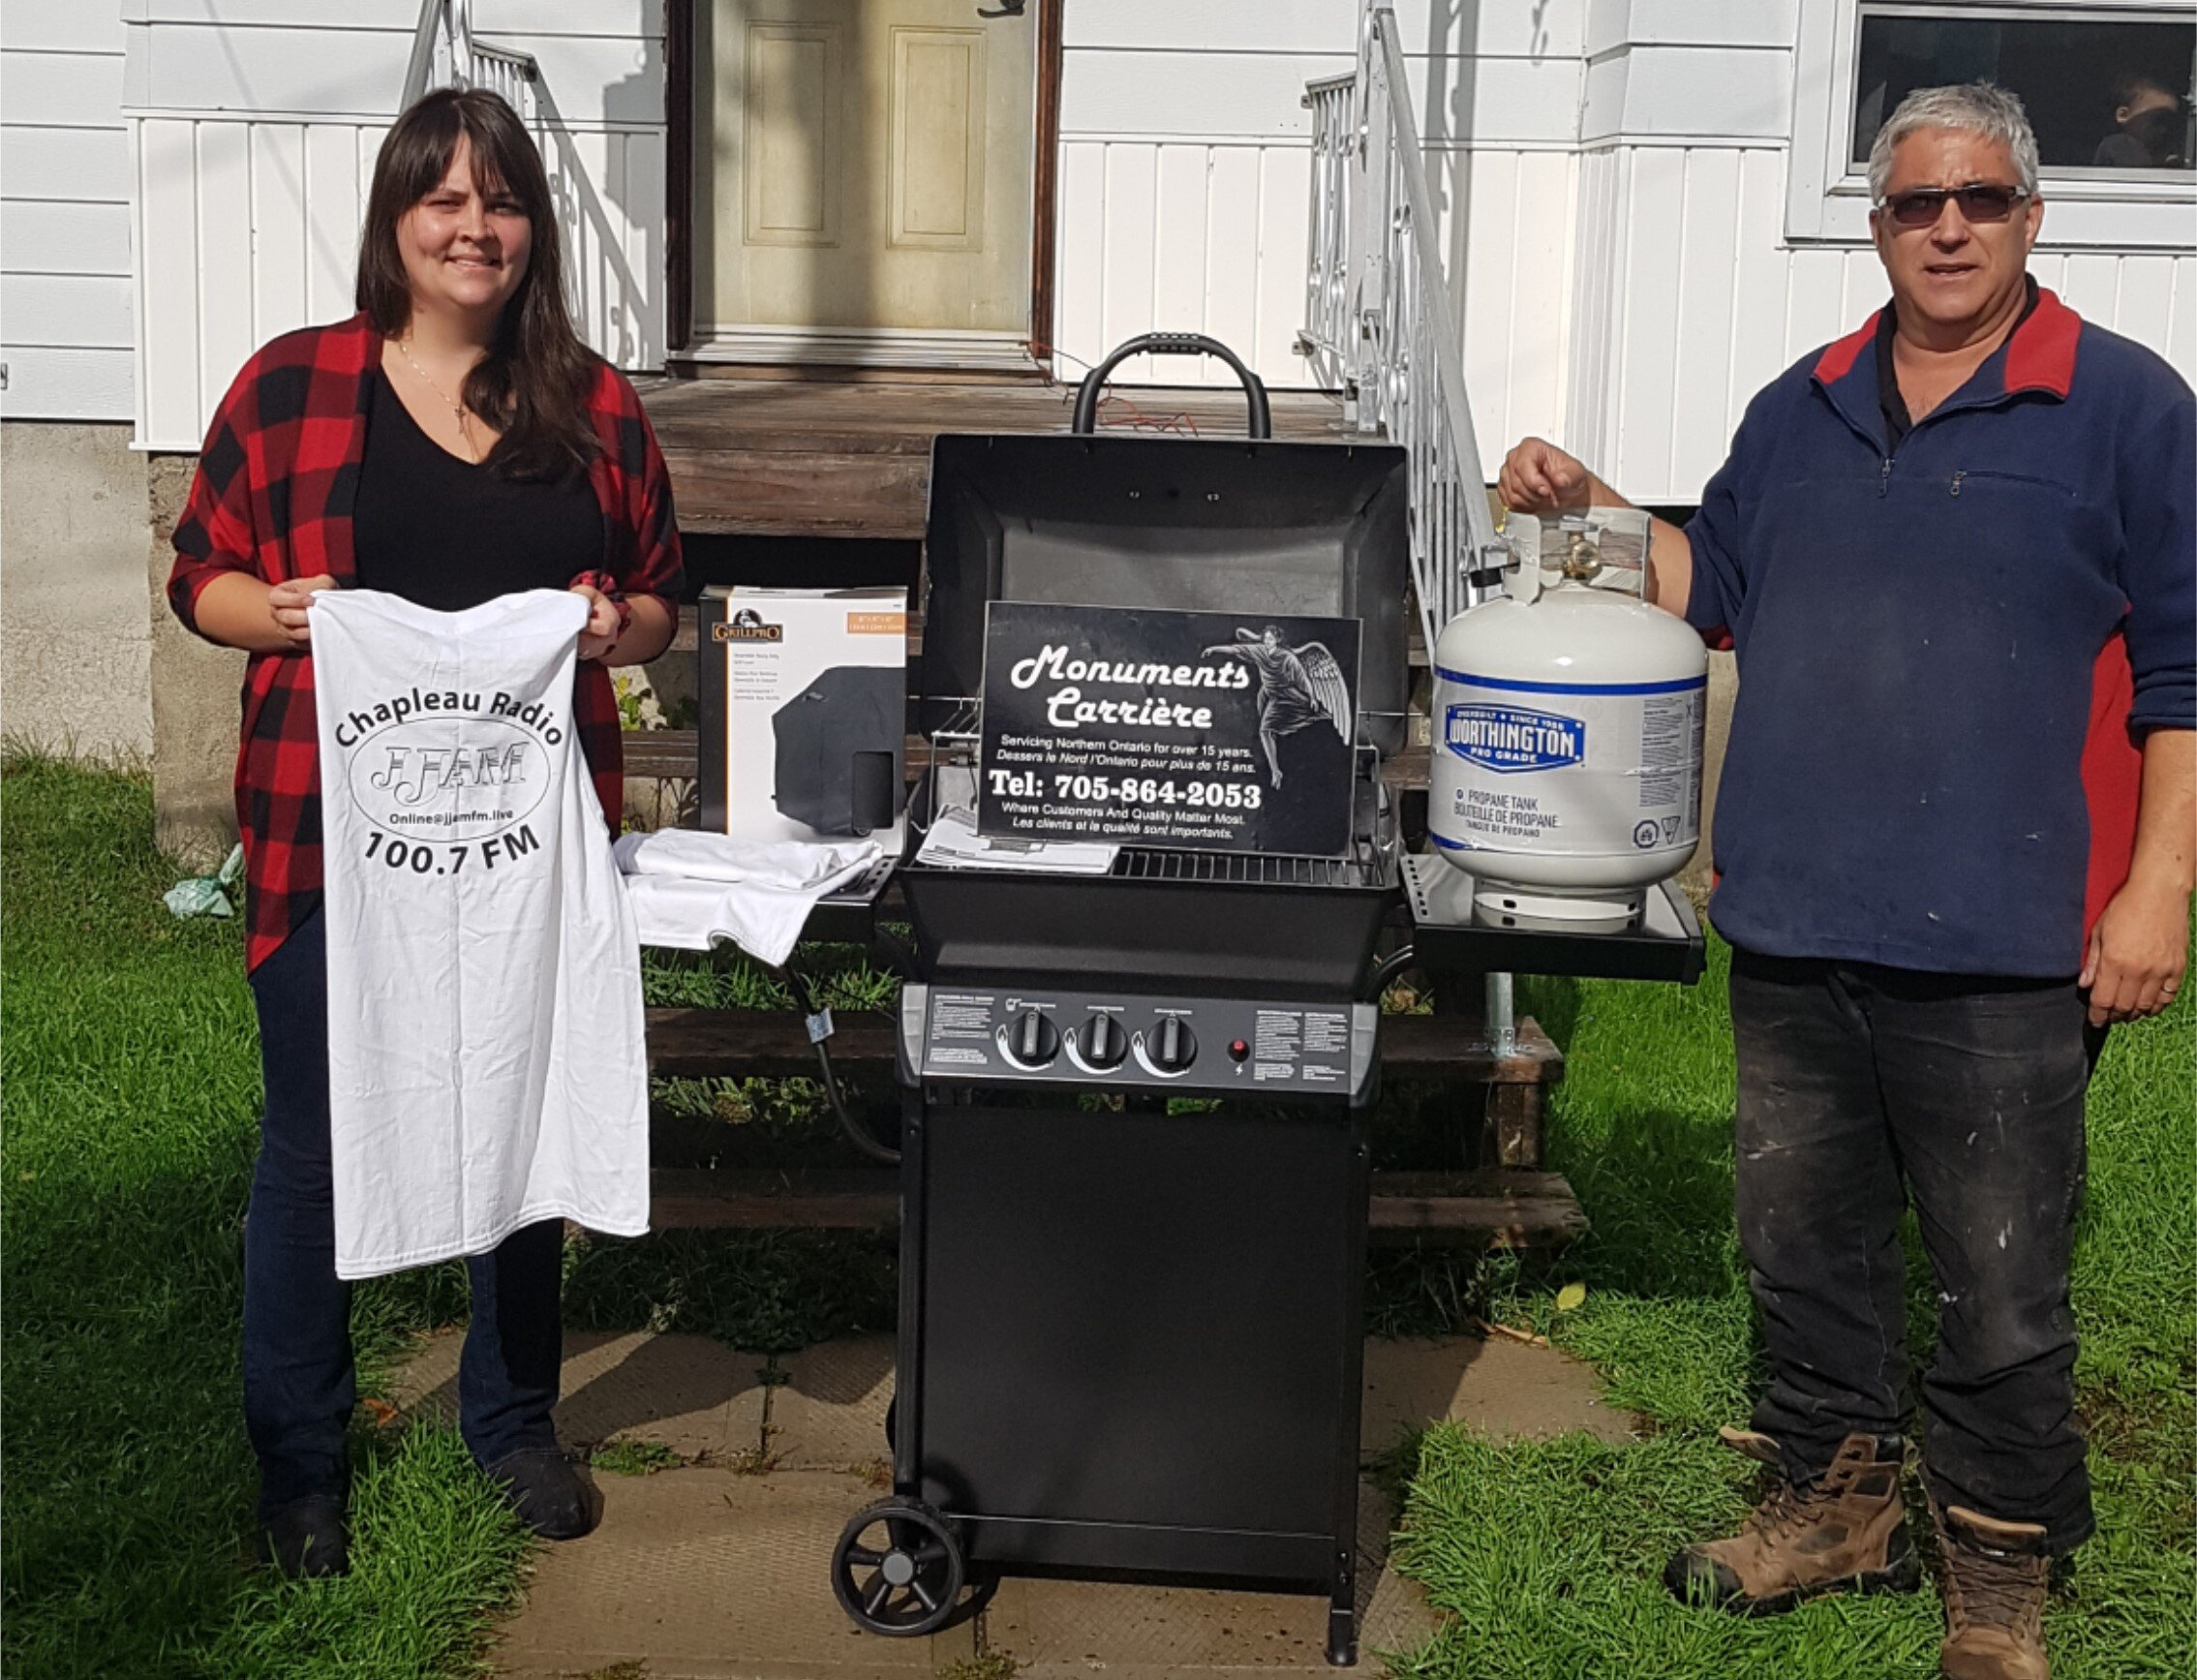 Monuments Carriere-Ultimate BBQ Giveaway -Prize drawn Sept 27 2019